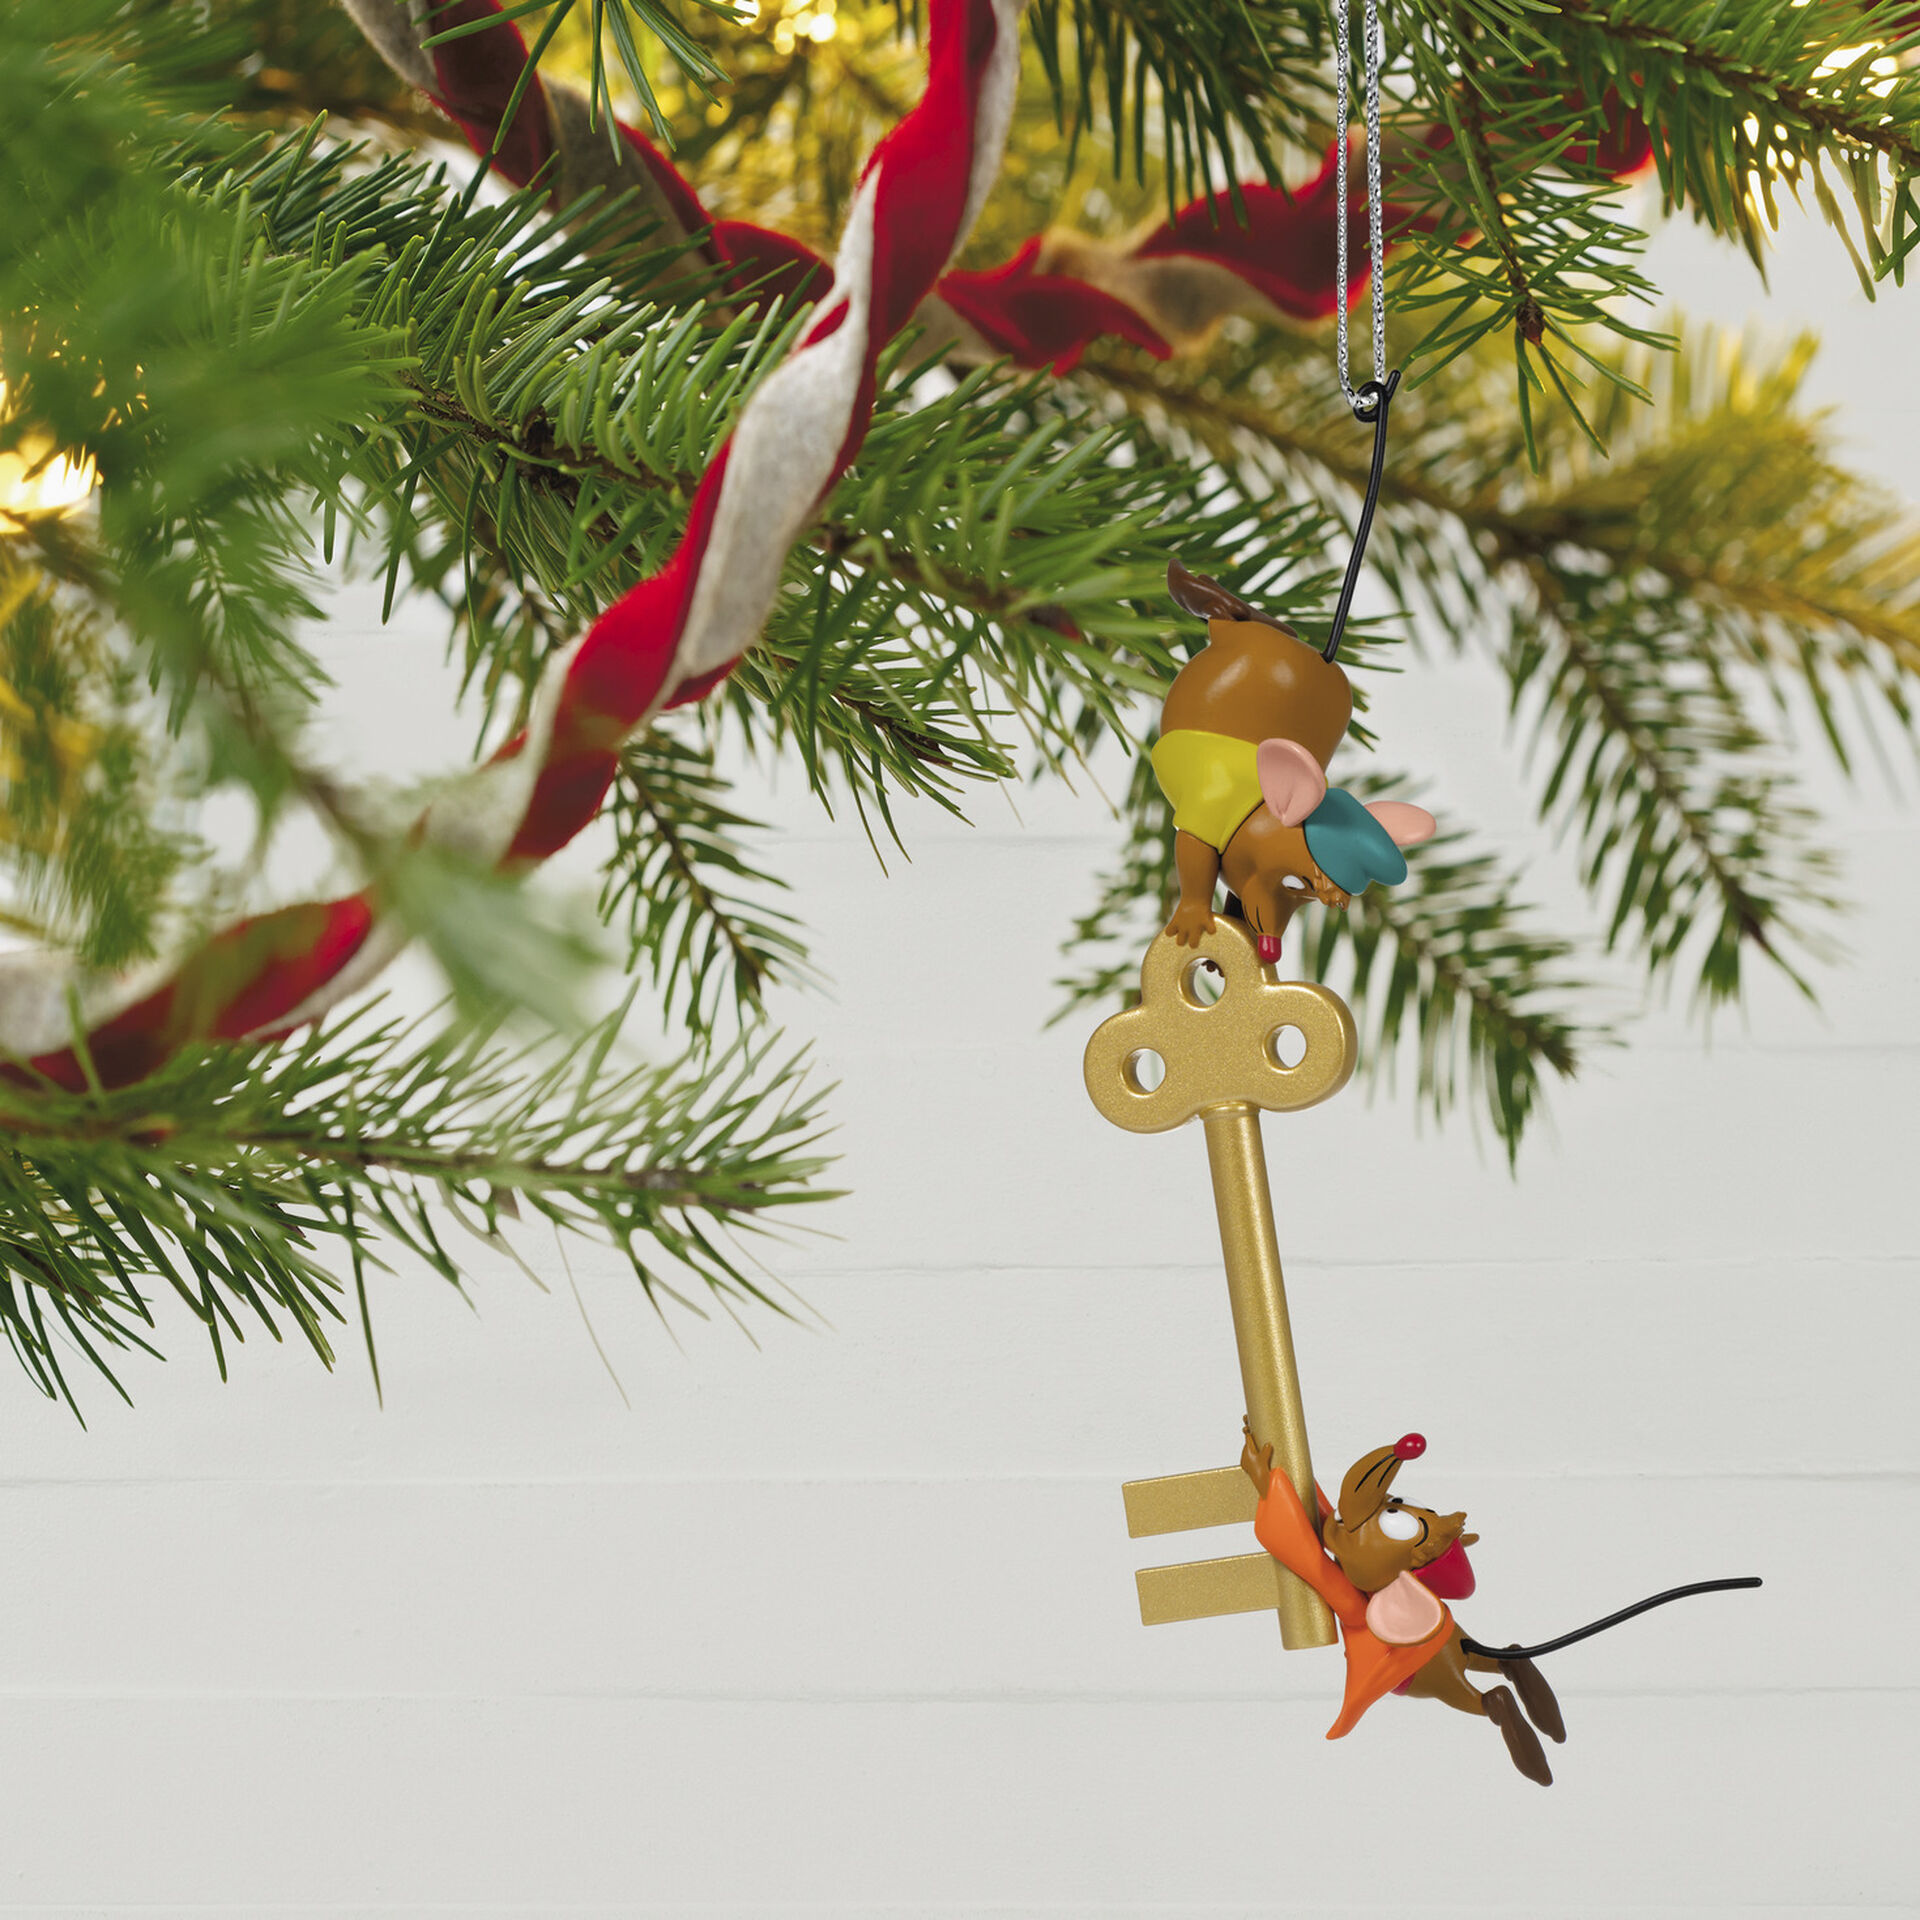 Disney 2021 Christmas Ornament The 2021 Disney Hallmark Keepsake Collection Has Been Revealed Chip And Company